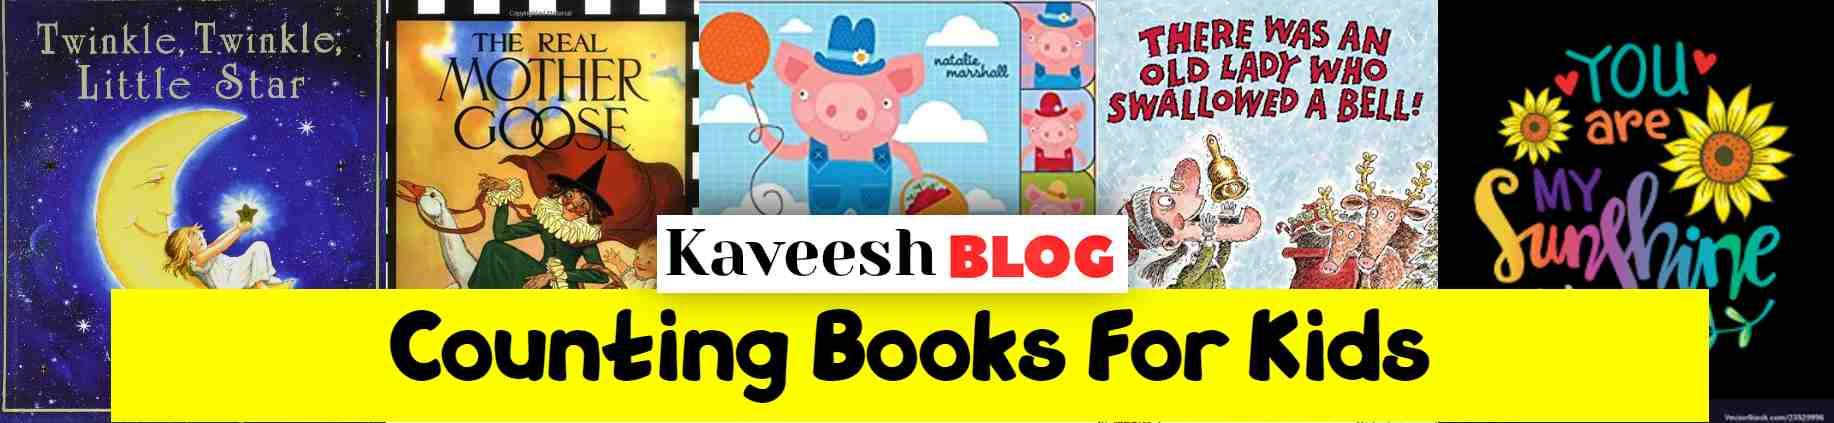 Counting Books FOR KIDS- KAVEESH.COM